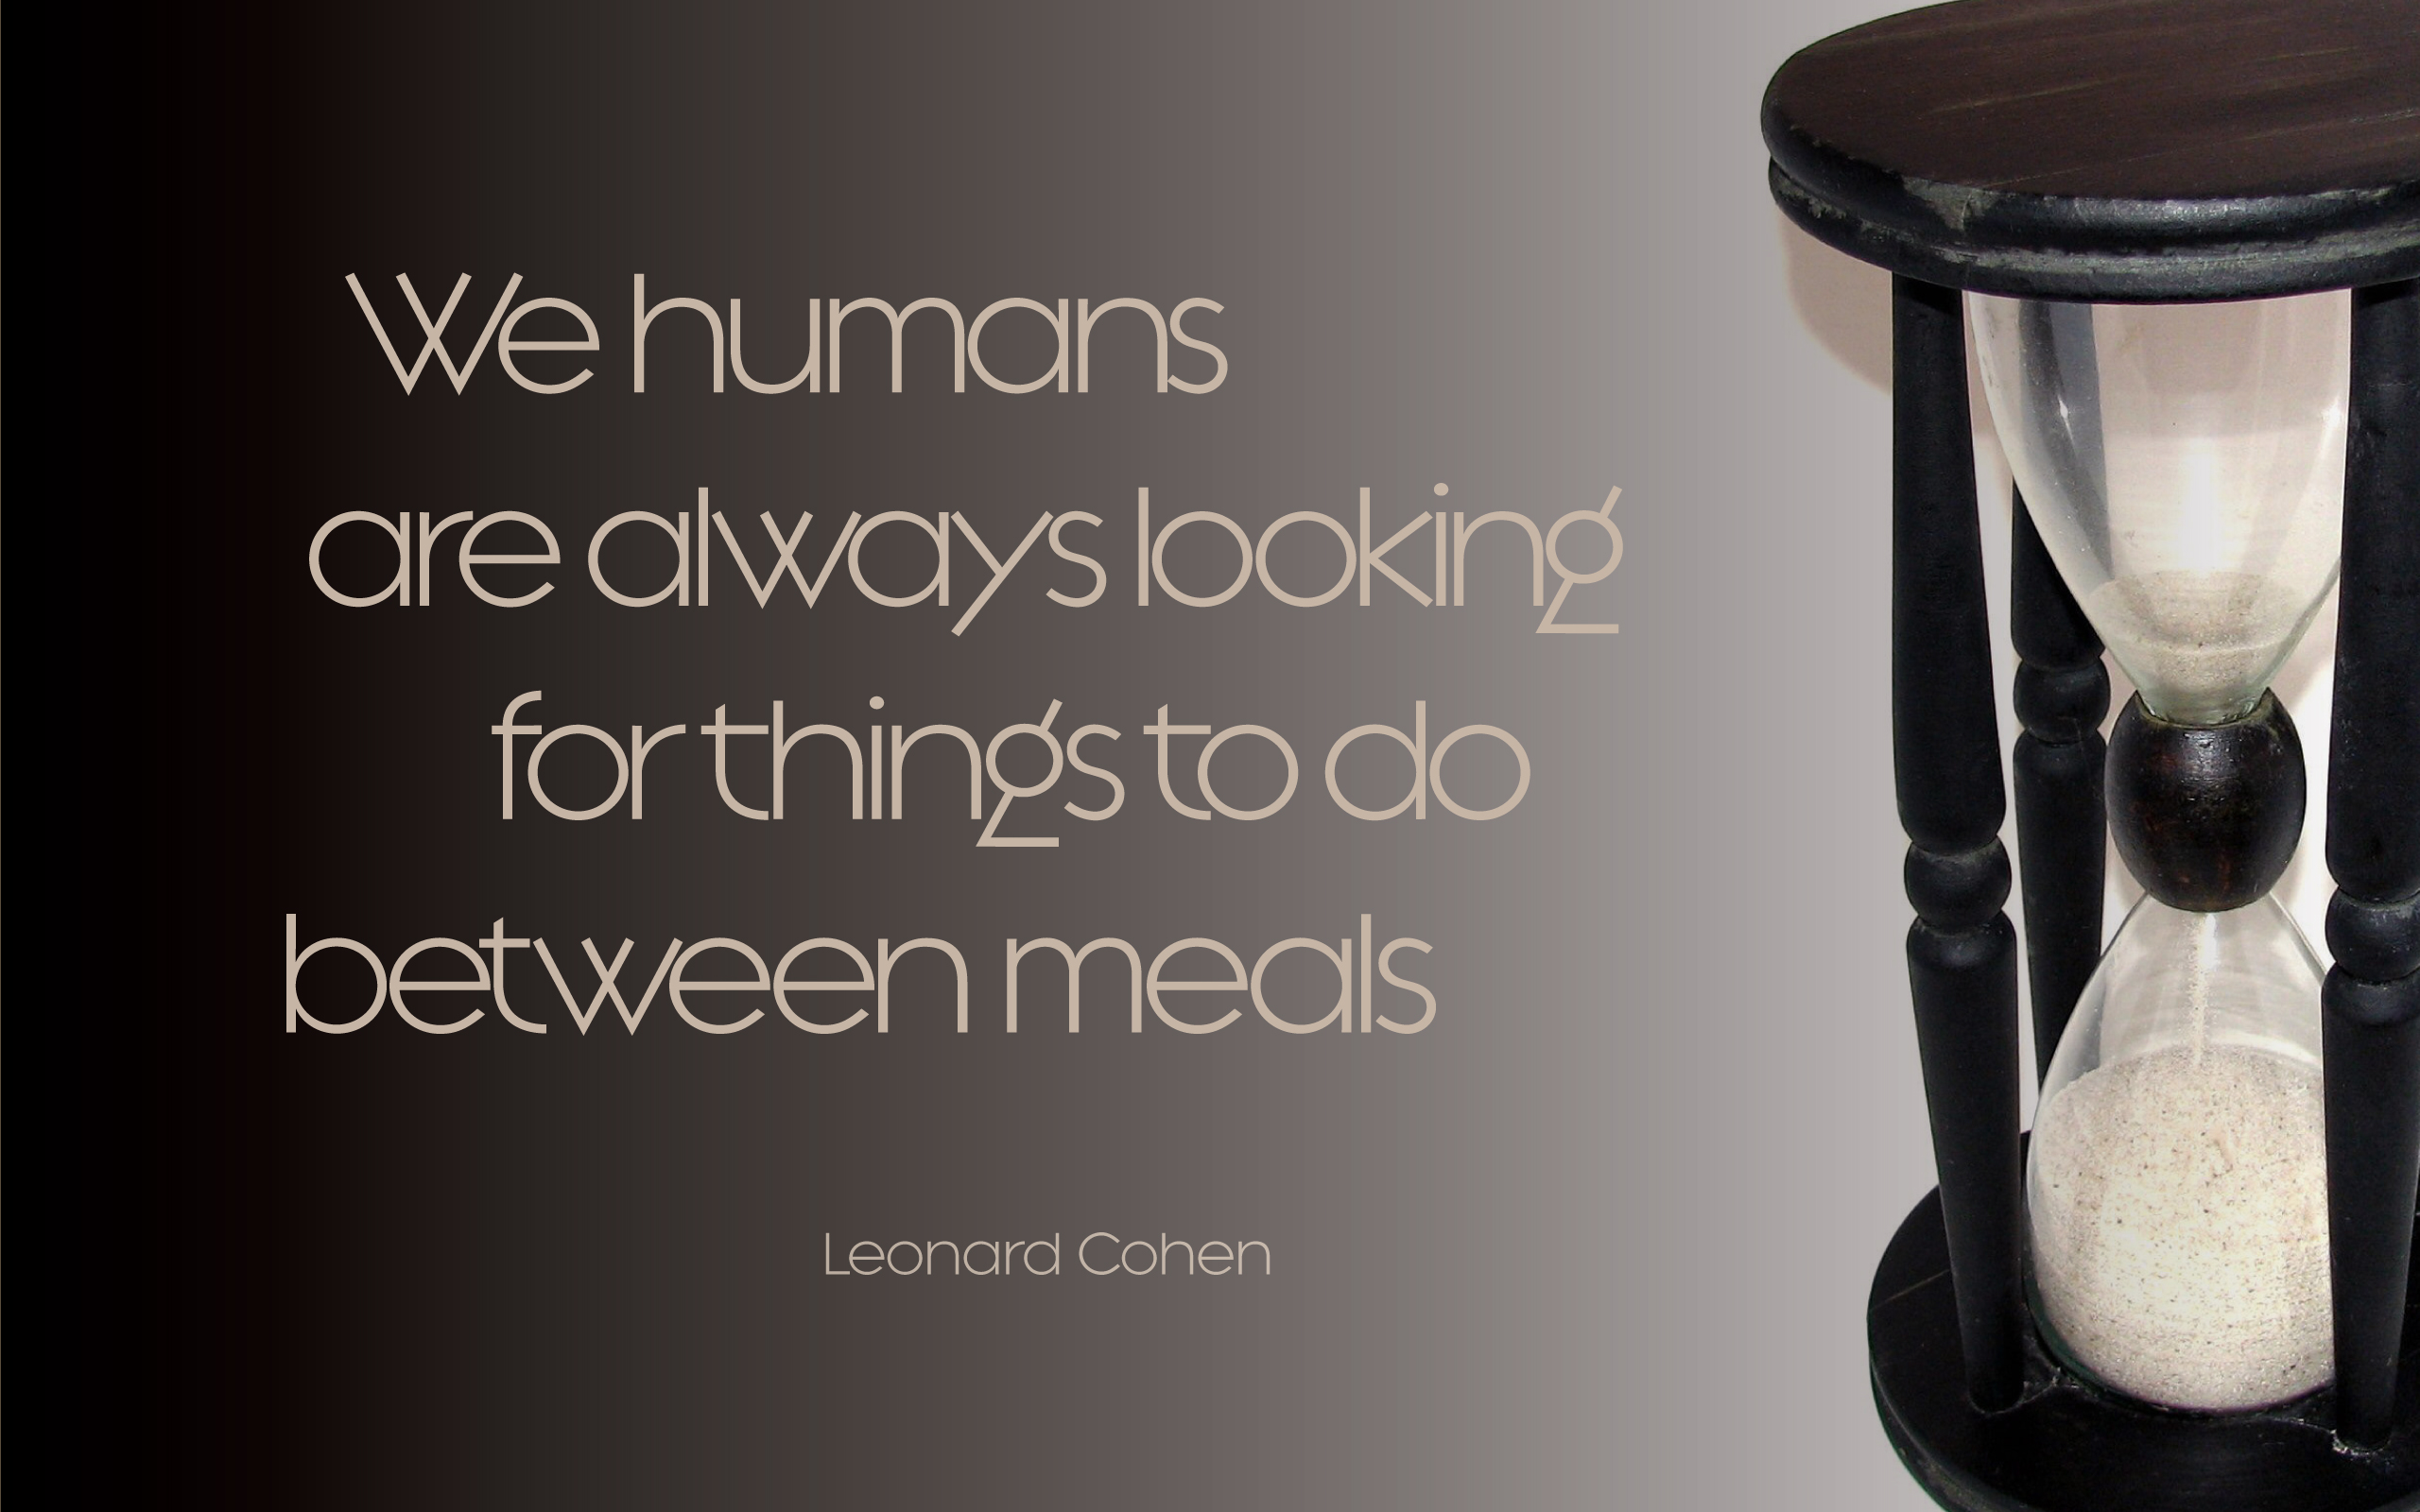 We humans are always looking for things to do between meals. — Leonard Cohen [2560×1600]